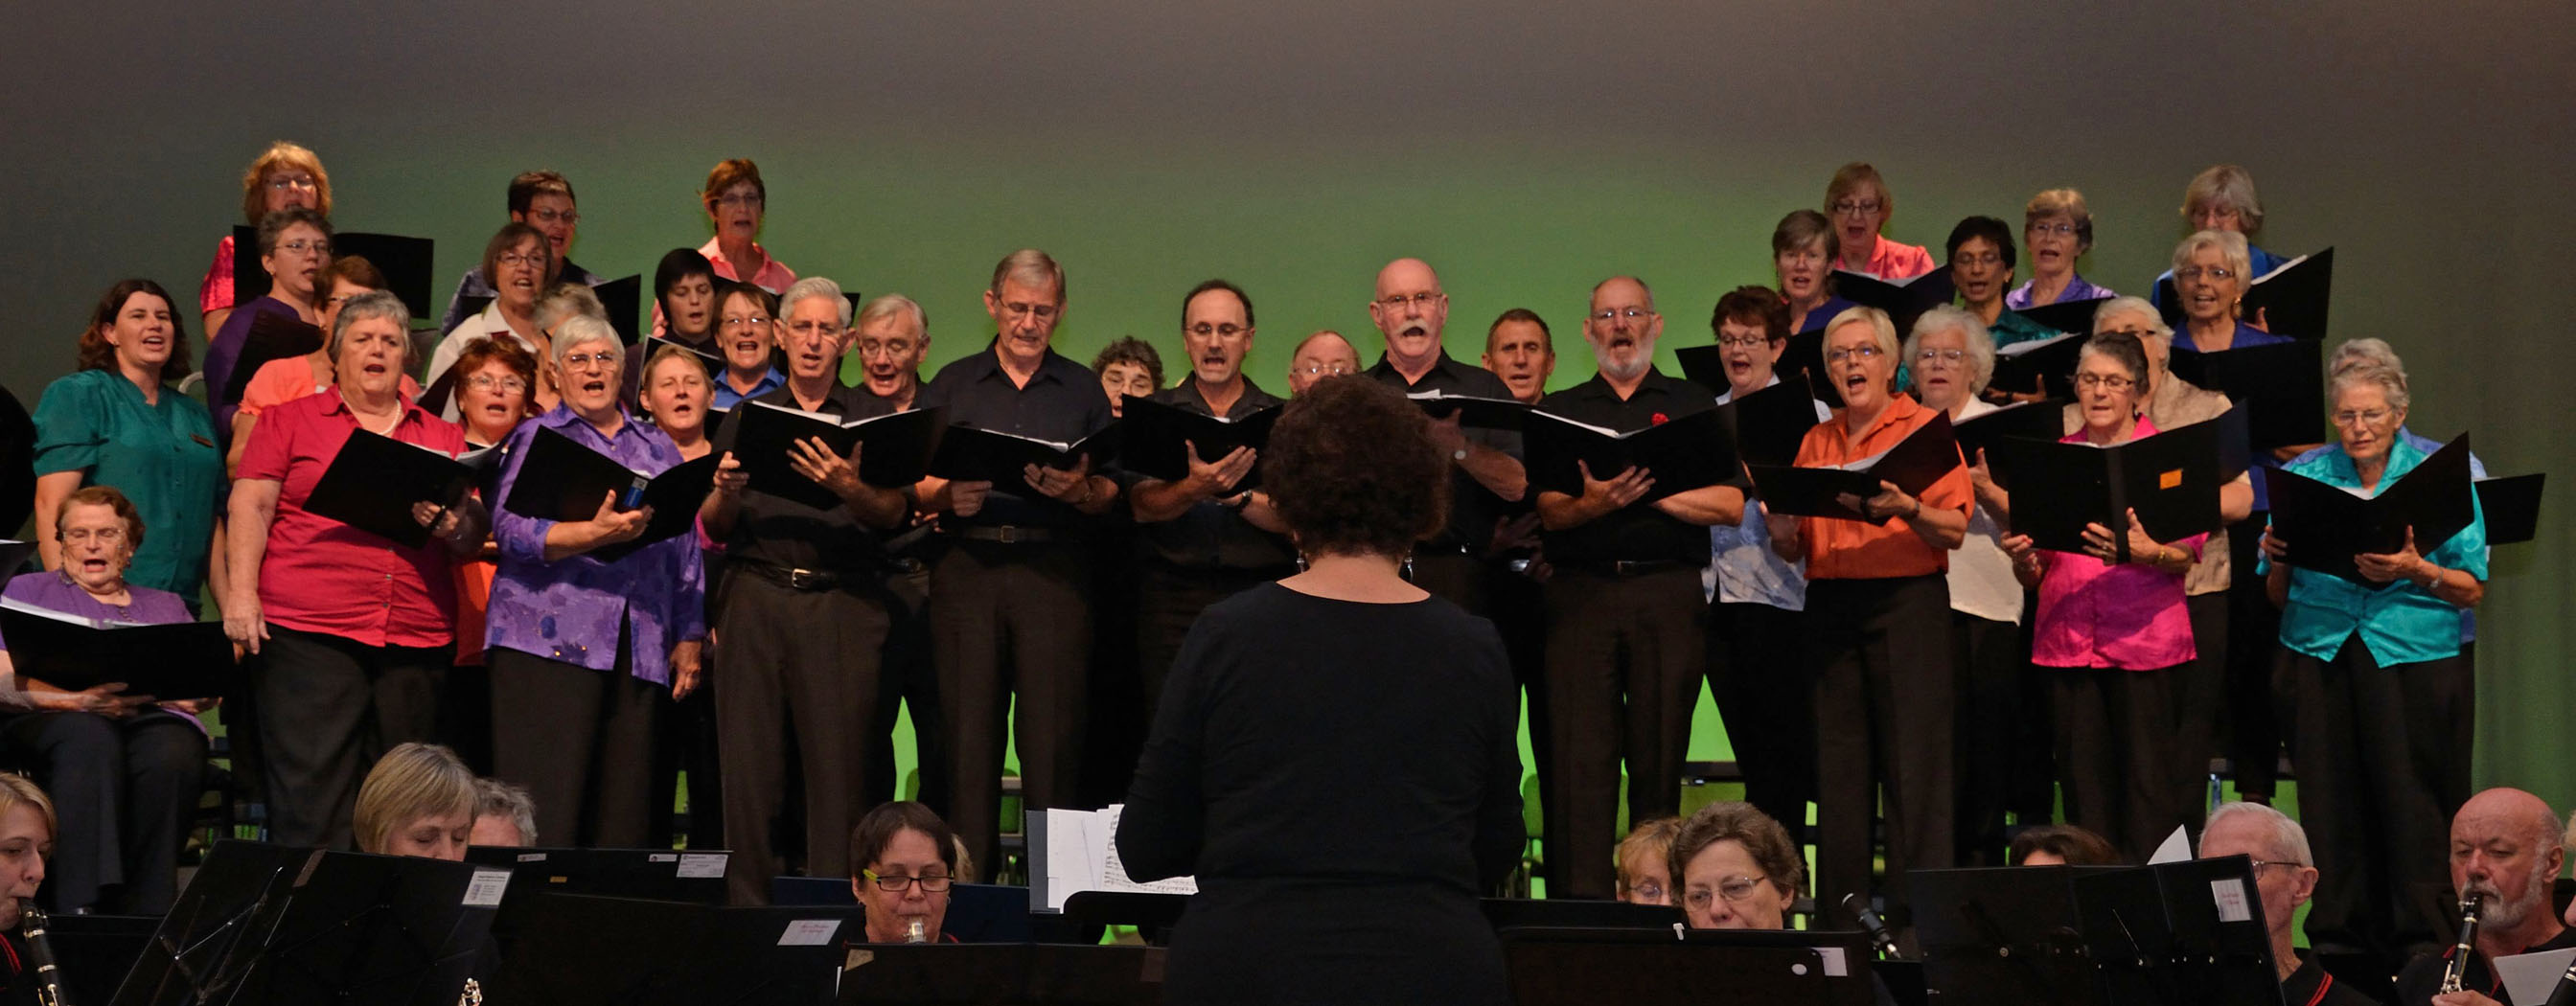 Full Choir